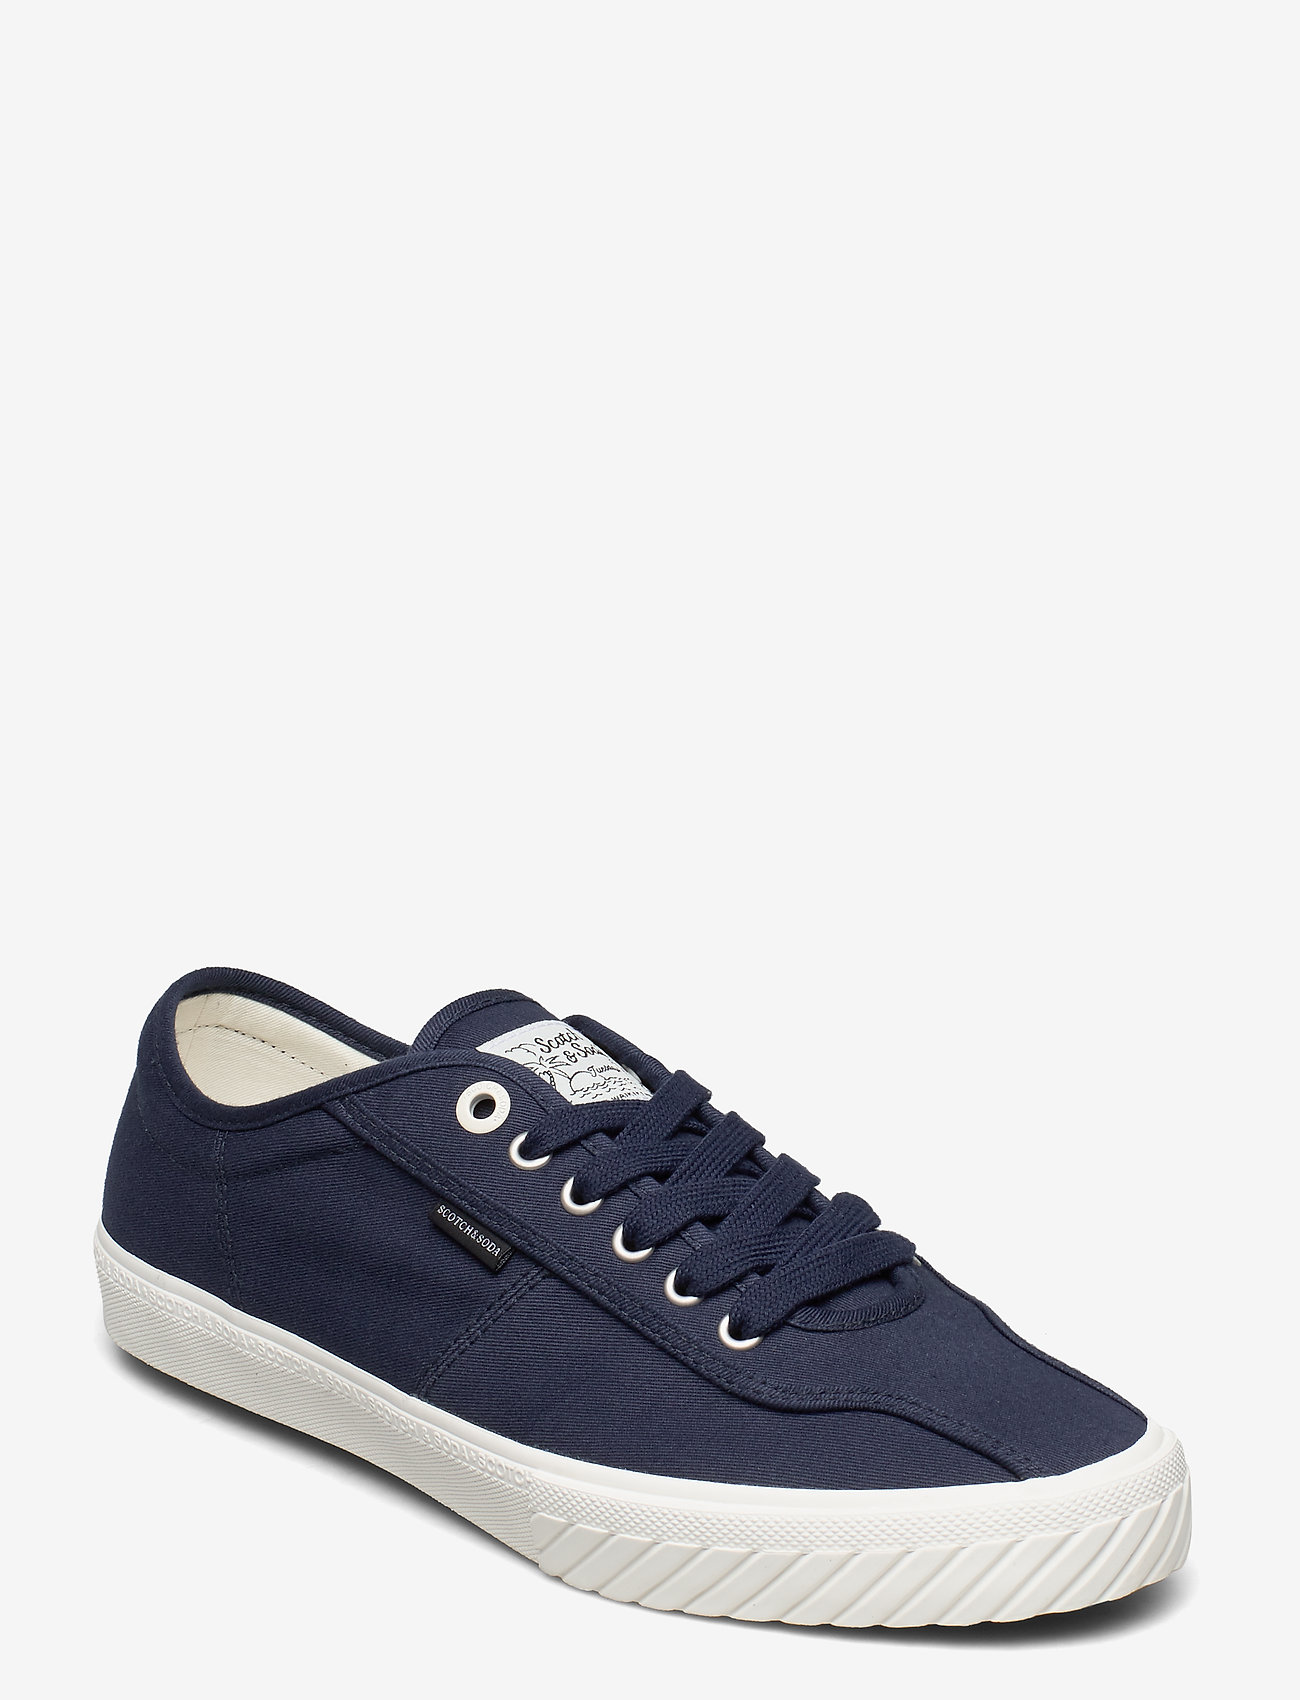 Scotch & Soda Shoes - Parcifal Low lace - low tops - marine - 0